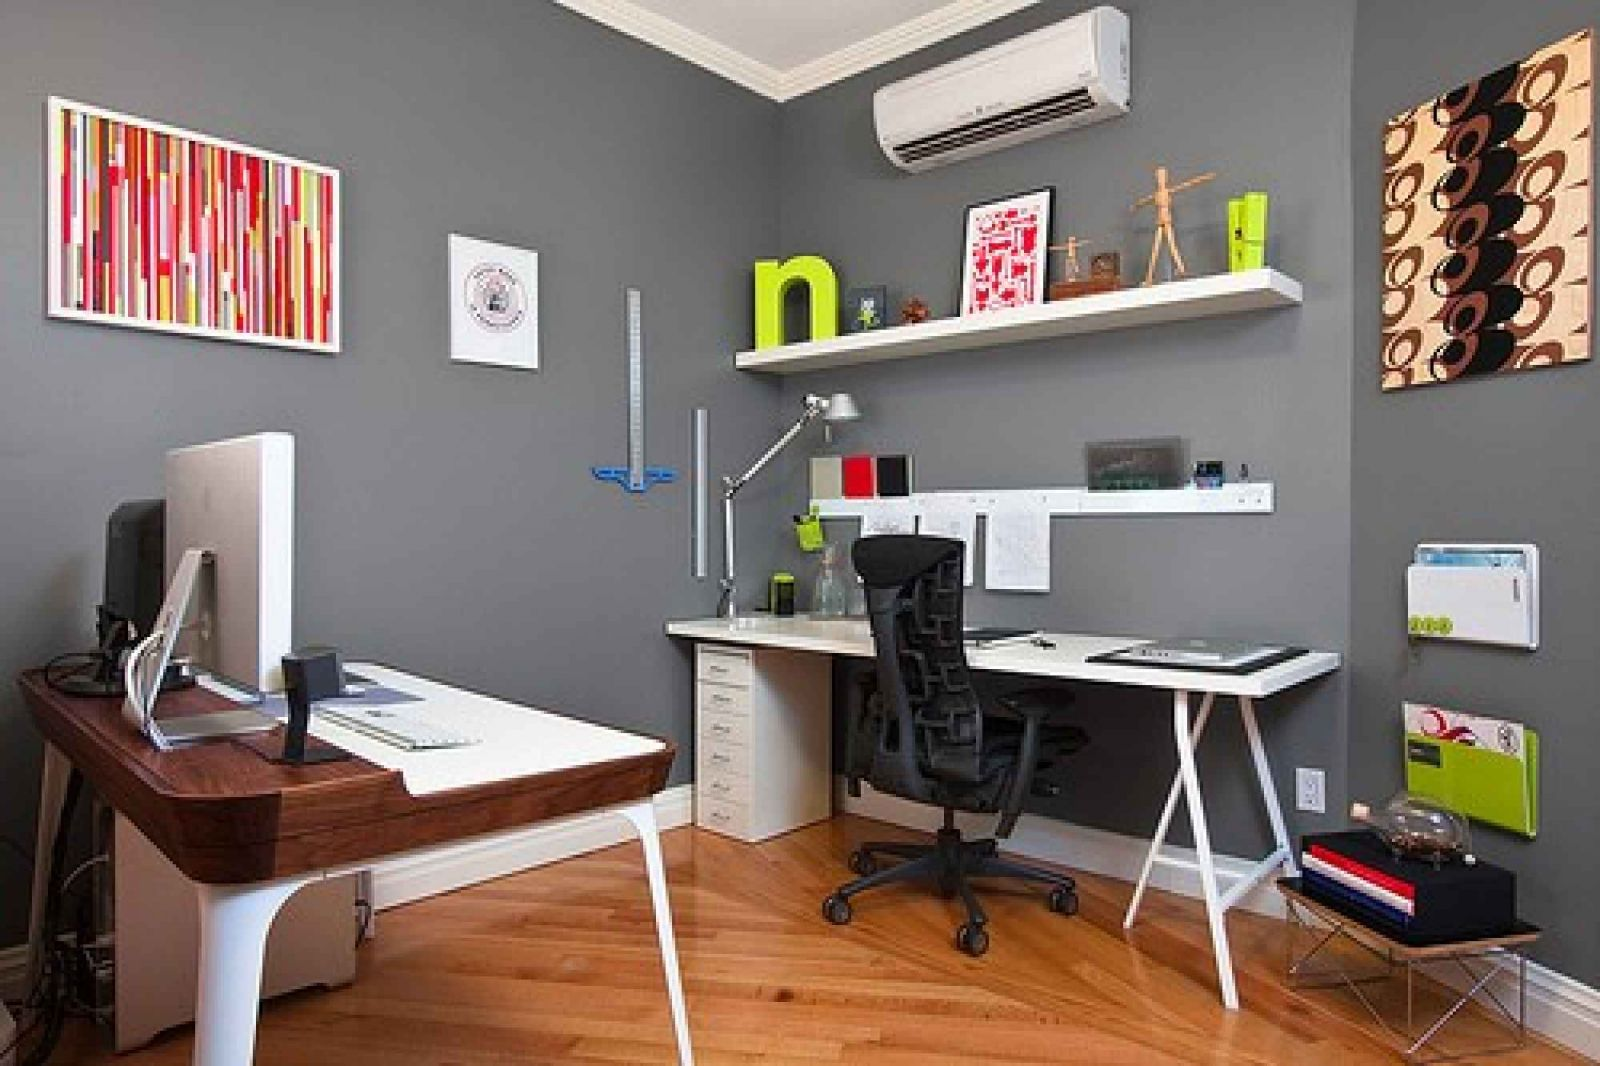 Making a home office Ceiling 10 Tips For Making Your Home Office Work Piedmont Office Supplies 10 Tips For Making Your Home Office Work Piedmont Office Supplies